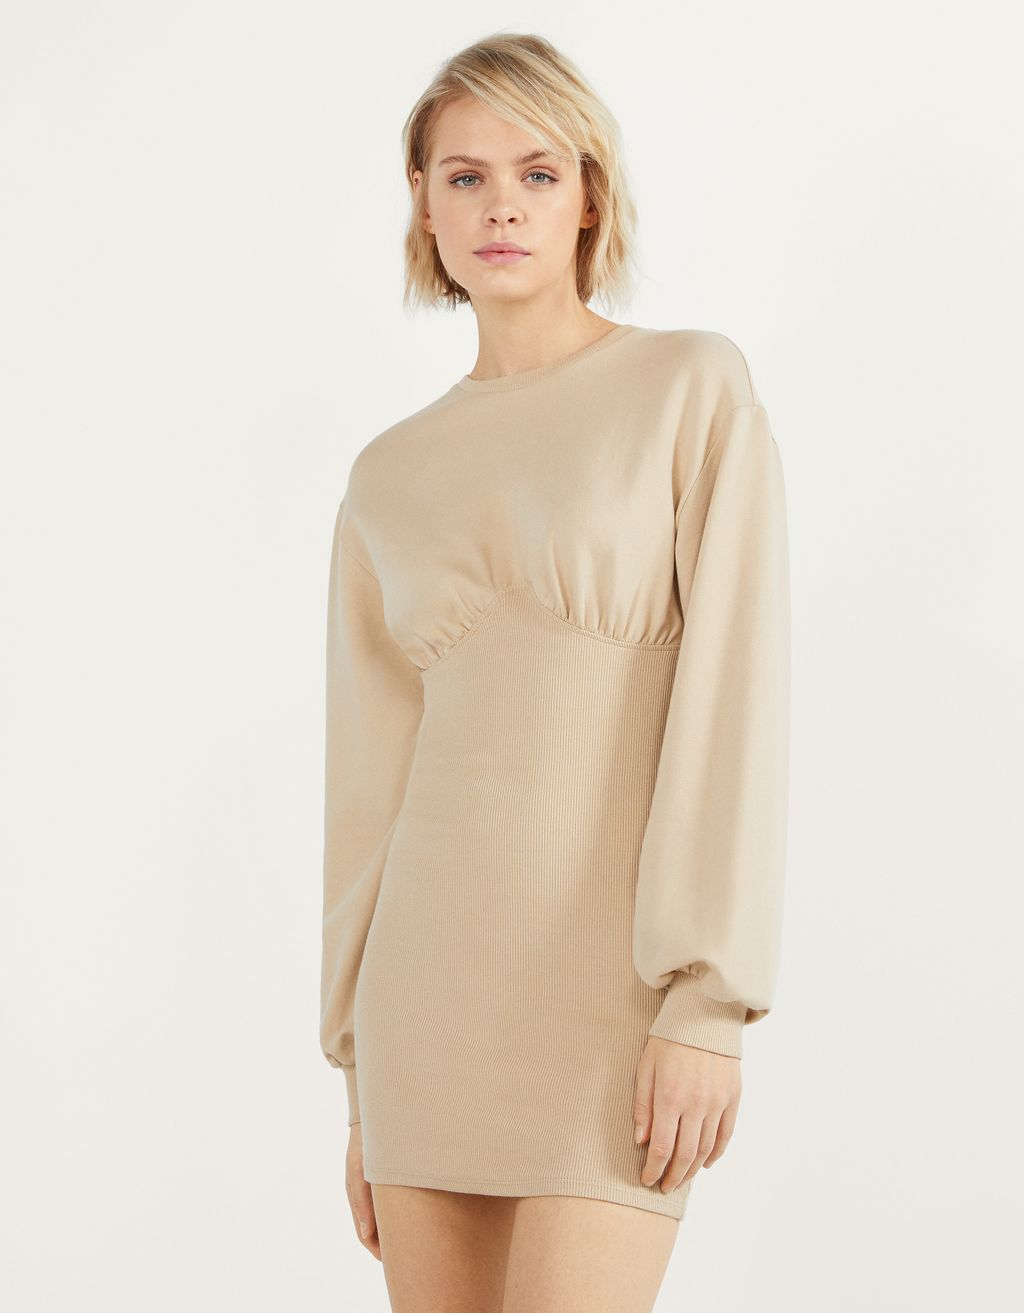 Fitted sweatshirt material dress